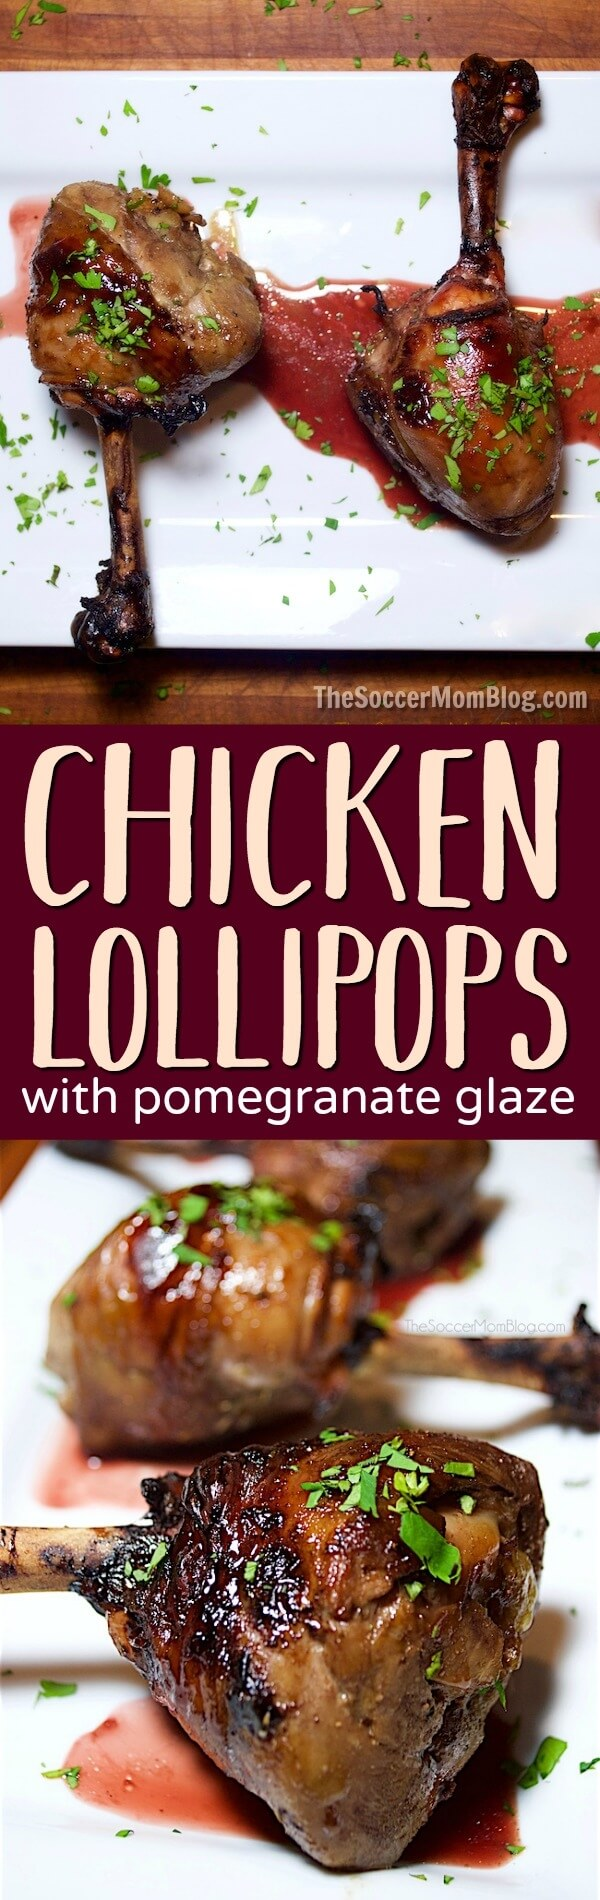 These roasted chicken lollipops will be the star of your next dinner or party and the pomegranate glaze is out-of-this-world delicious!